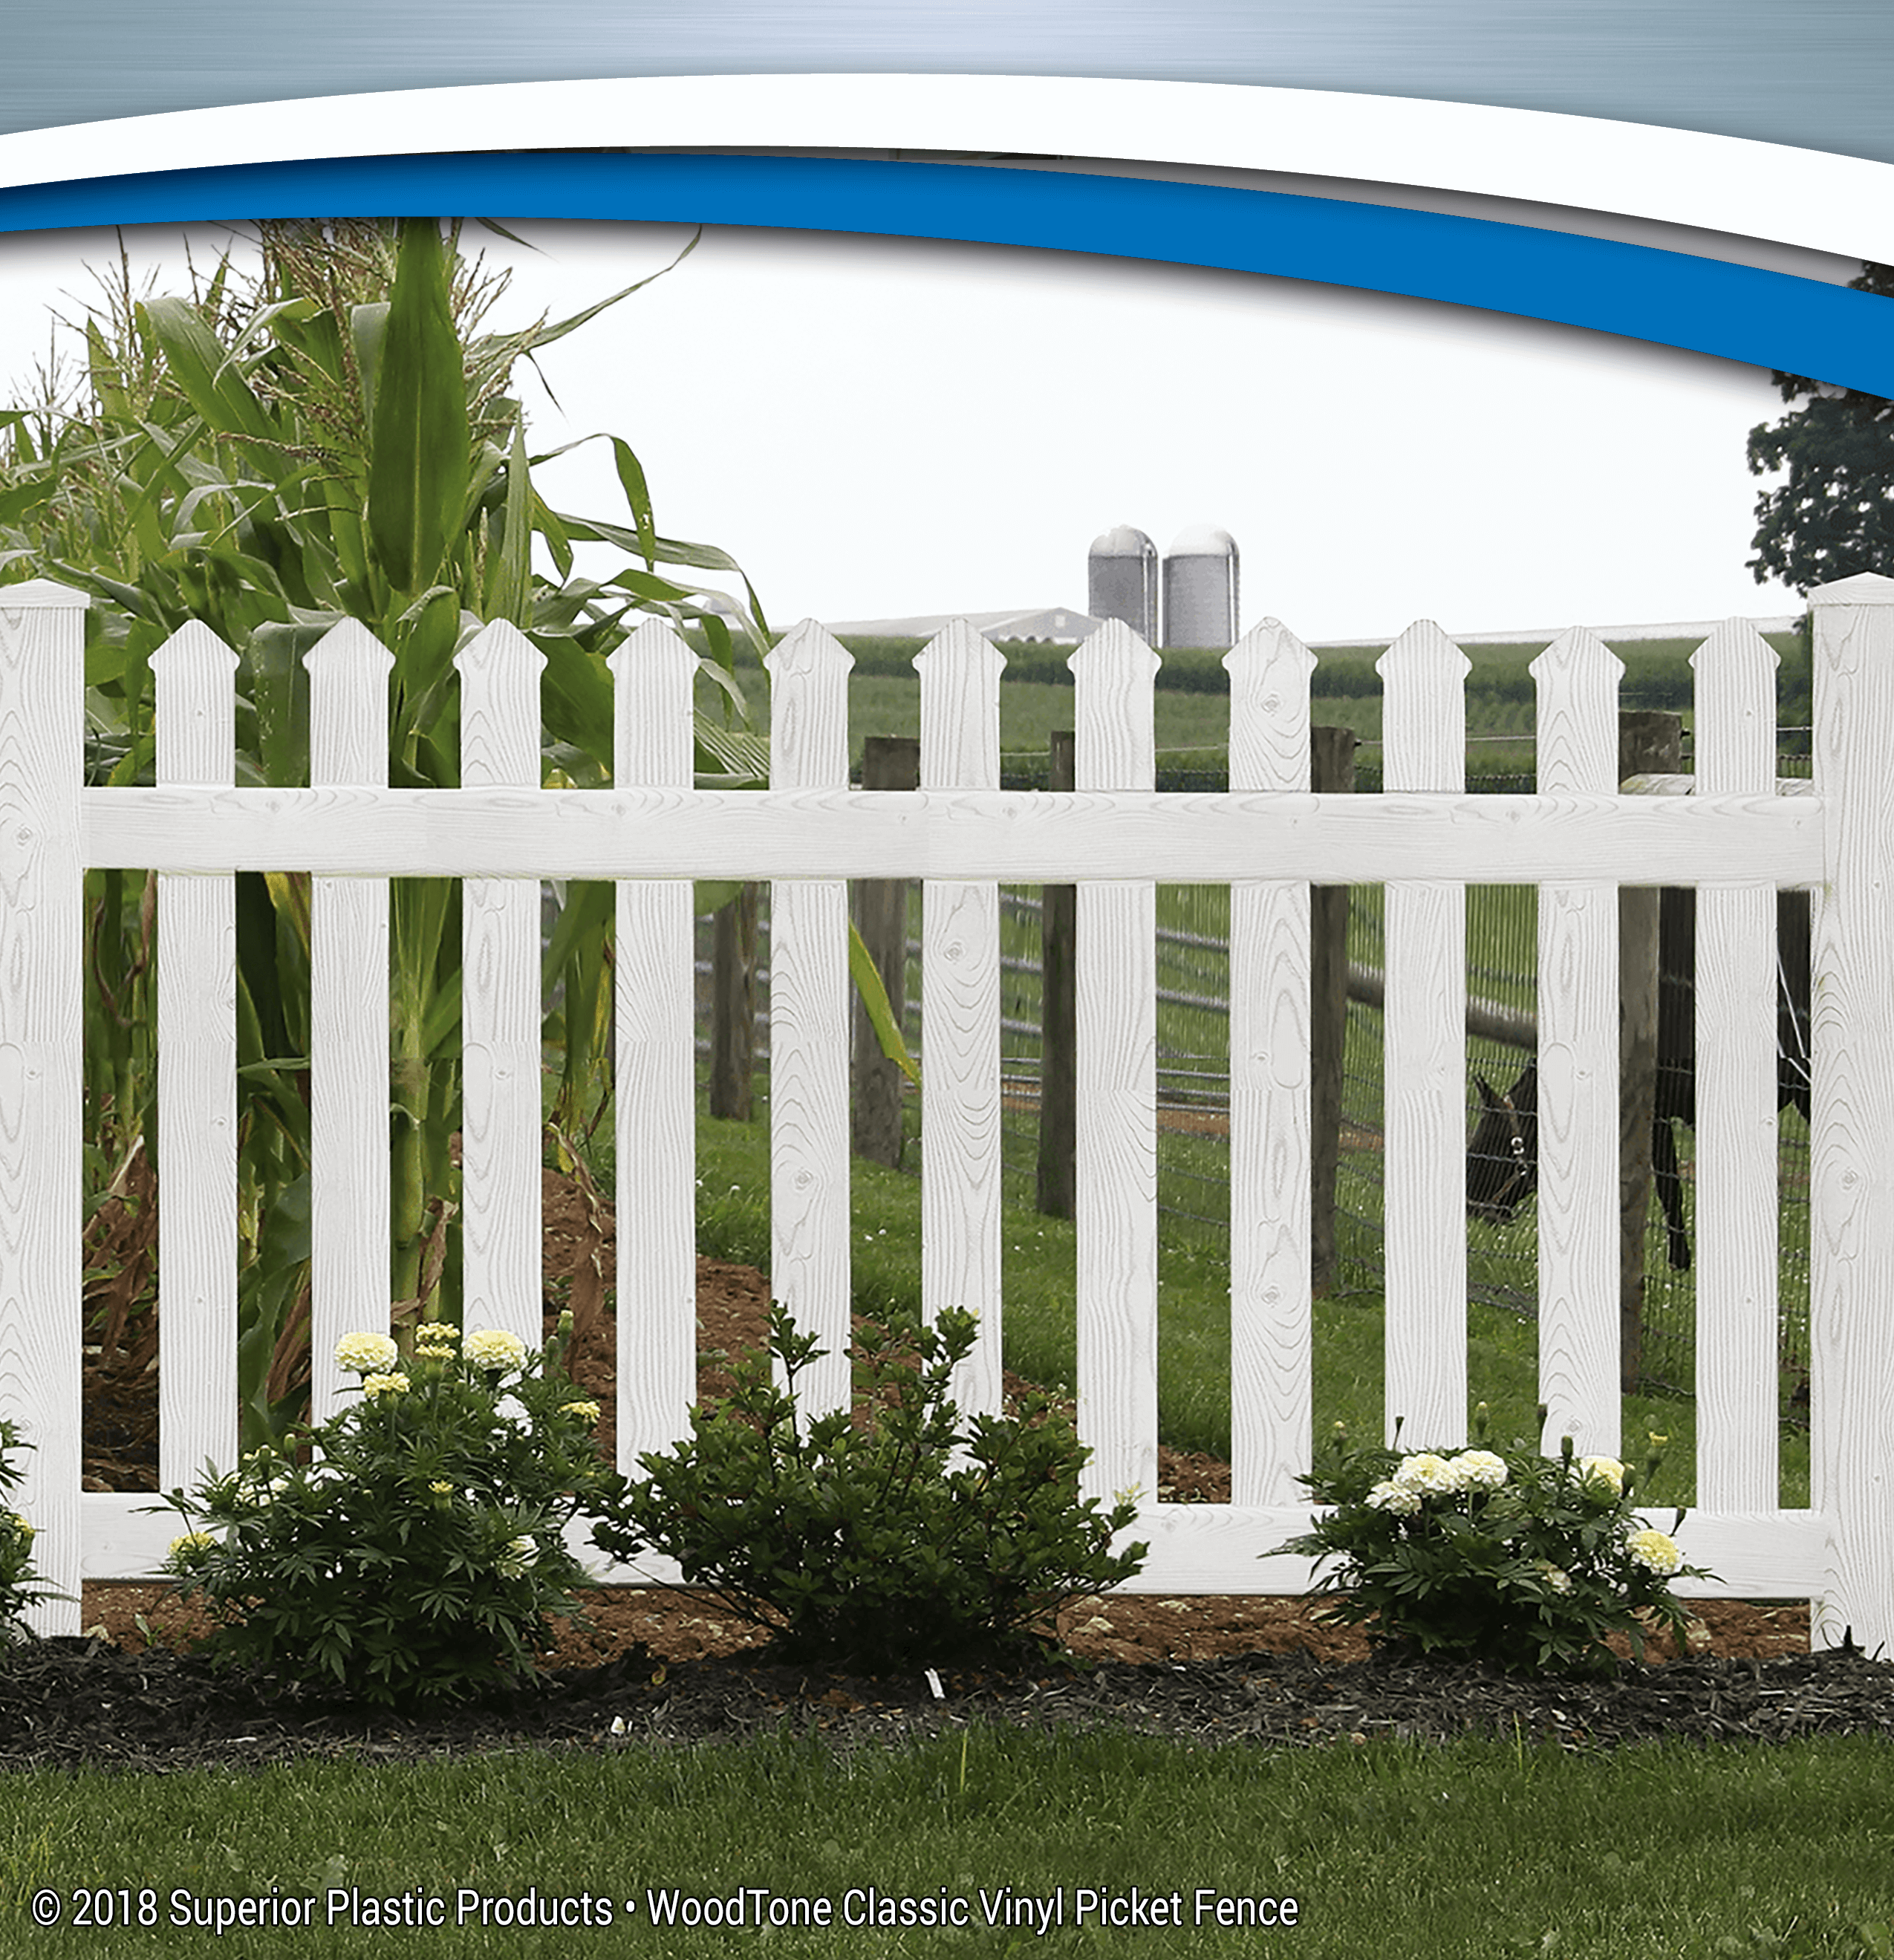 WoodTone Vinyl Fence - Superior Plastic ProductsClassic Vinyl Picket Fence - Superior Plastic Products